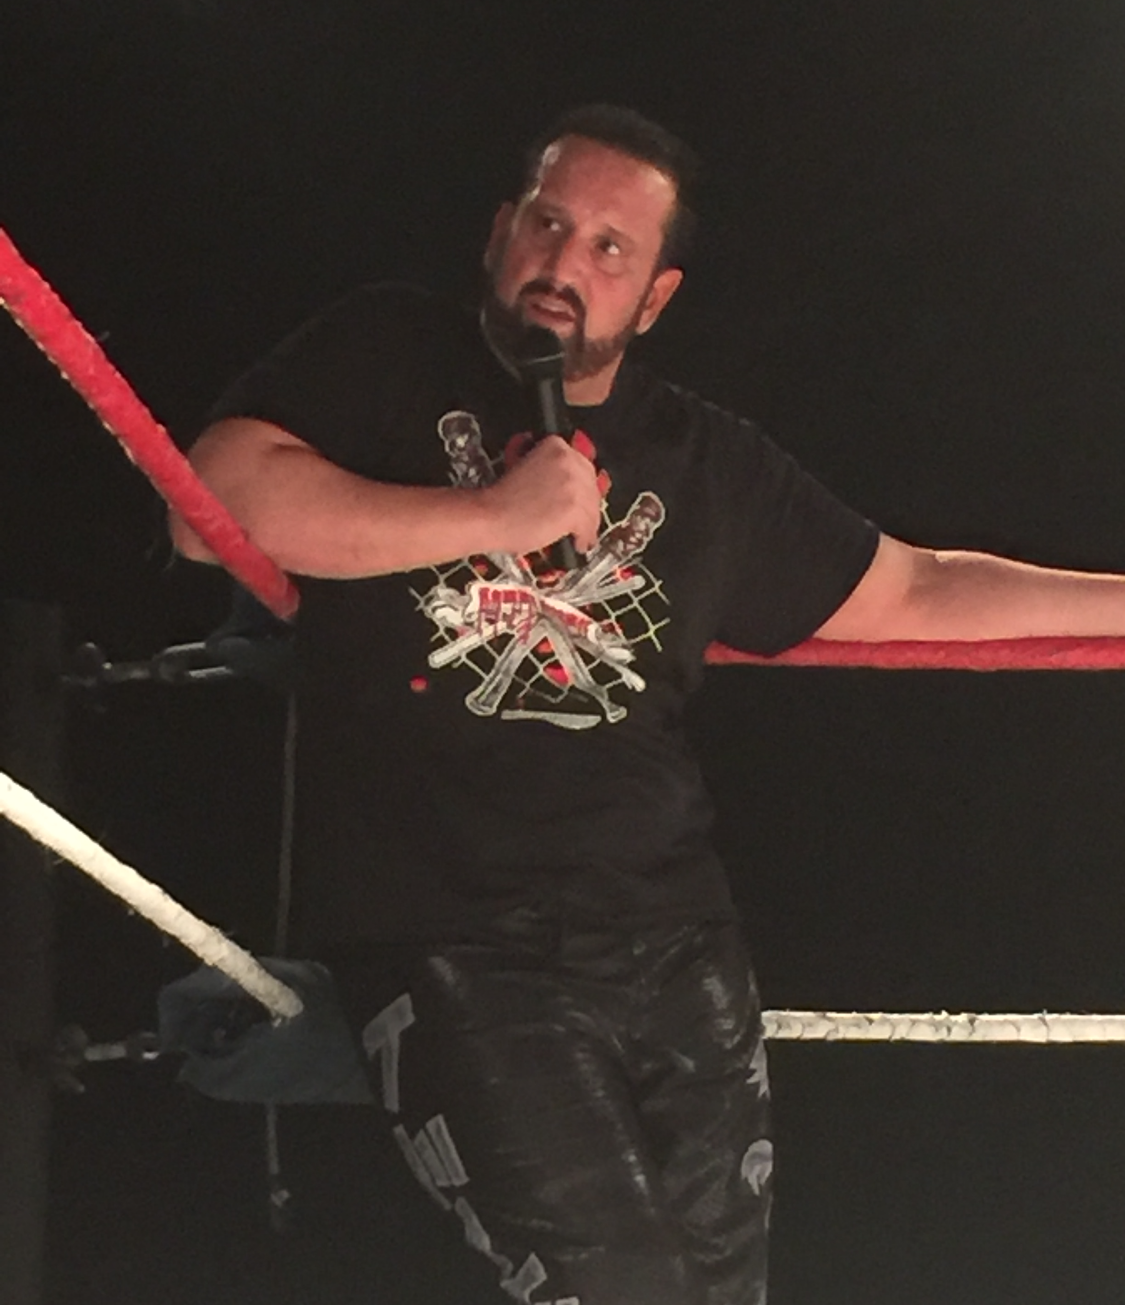 Thank you Tommy Dreamer